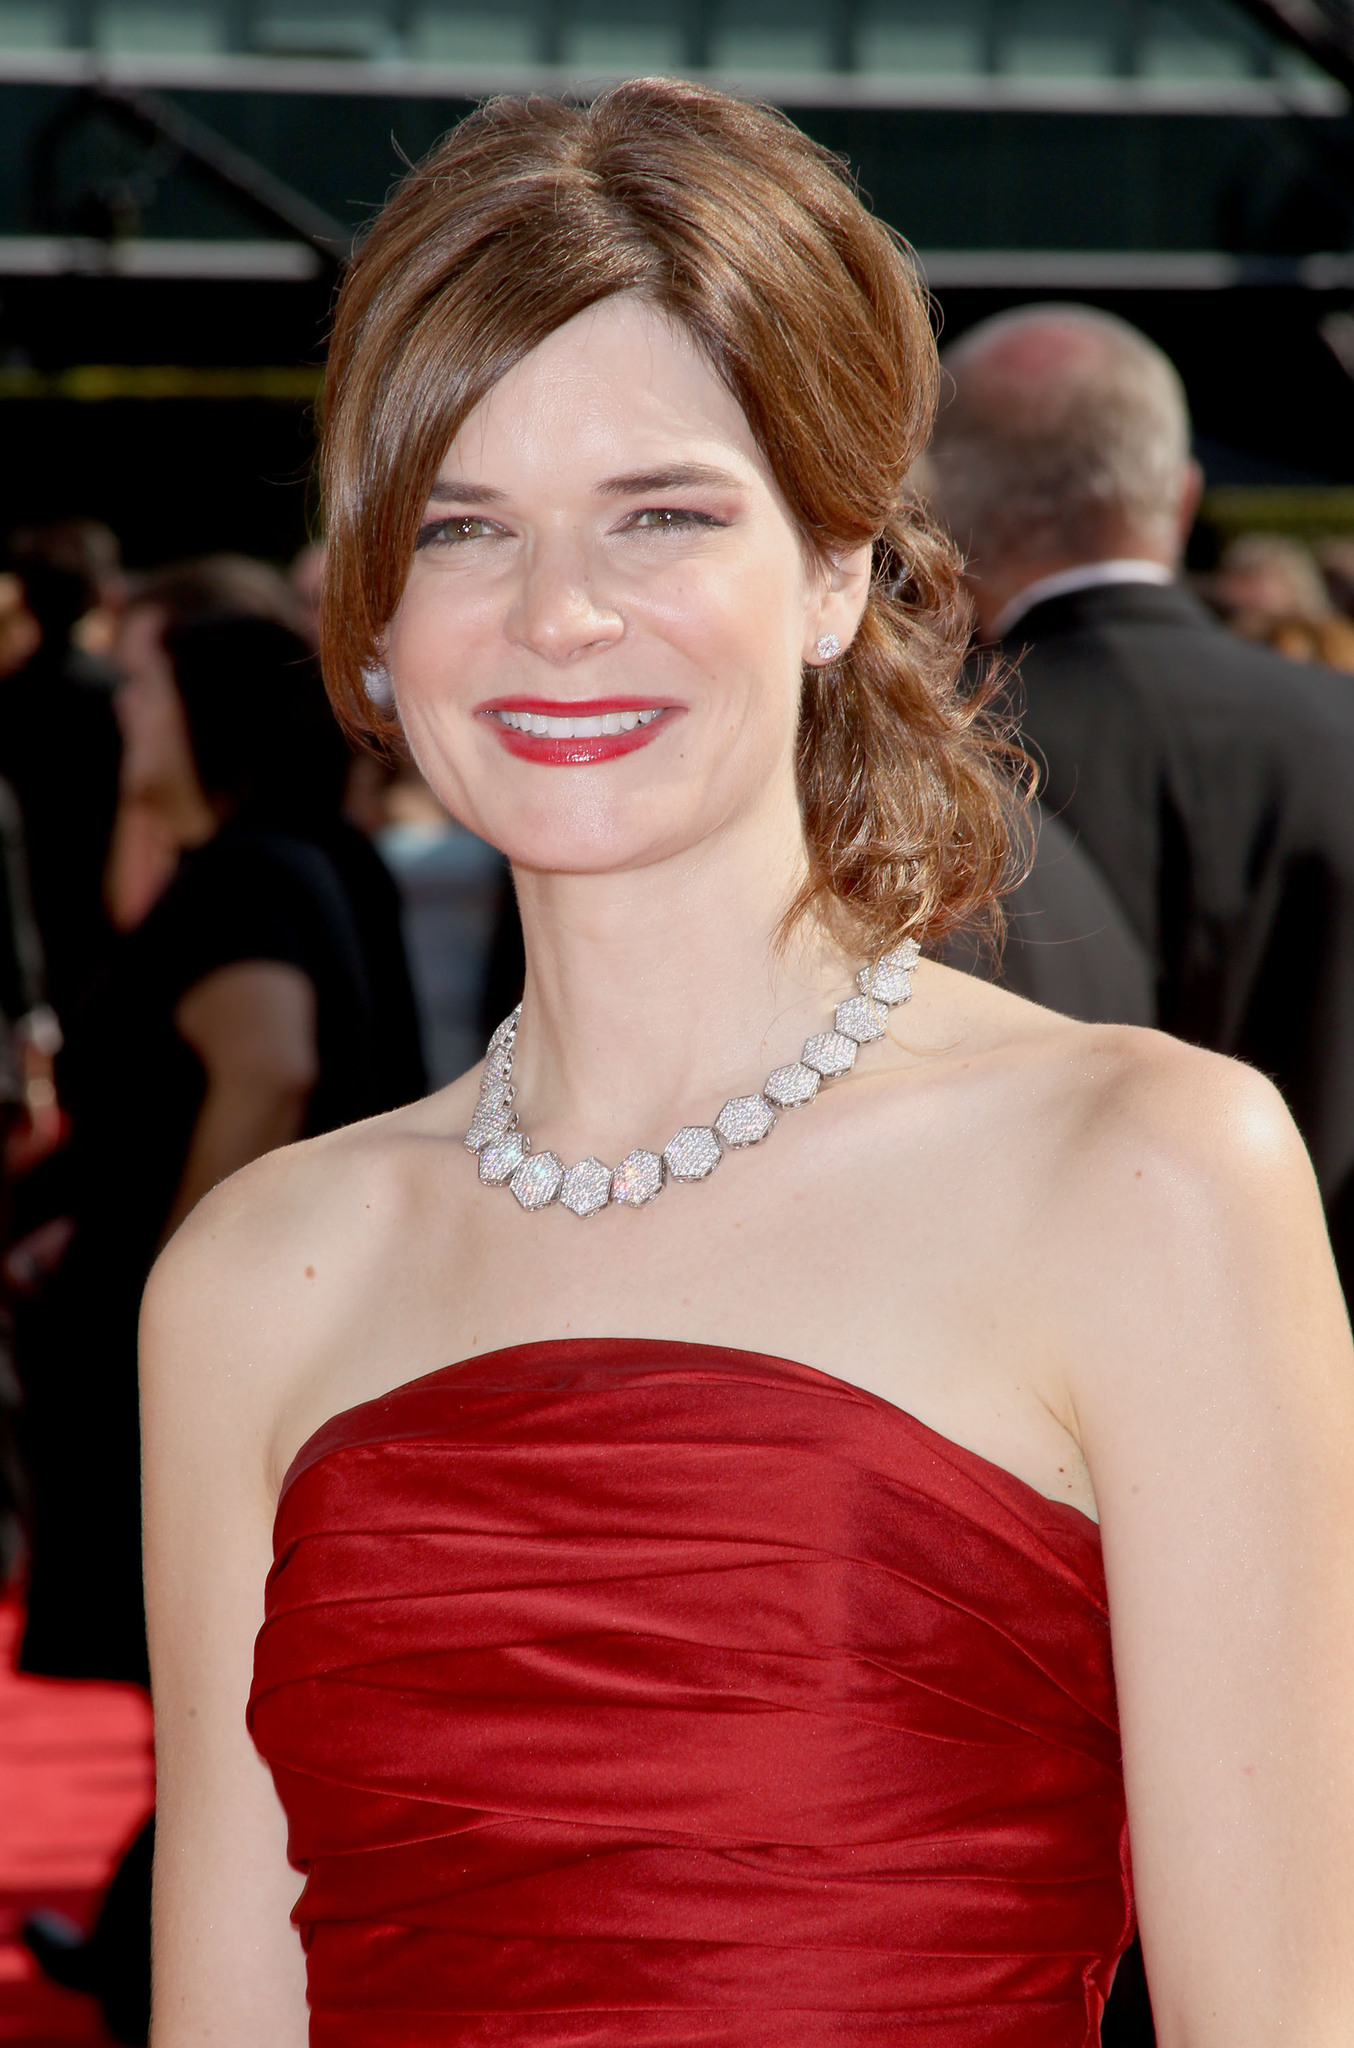 Betsy Brandt breaking bad